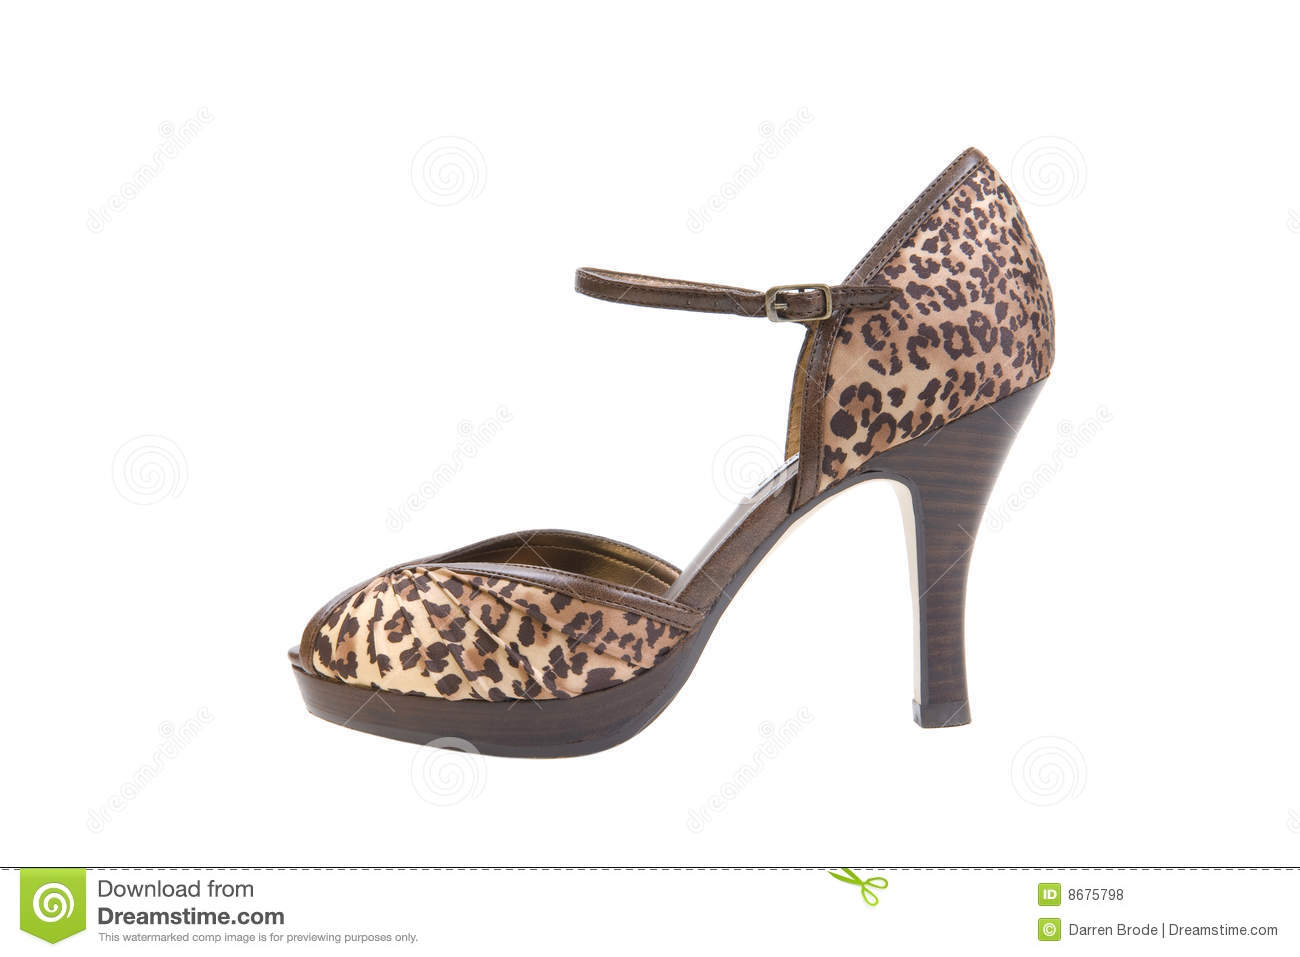 leopard high heel shoe chair in water pool chairs print royalty free stock photos image